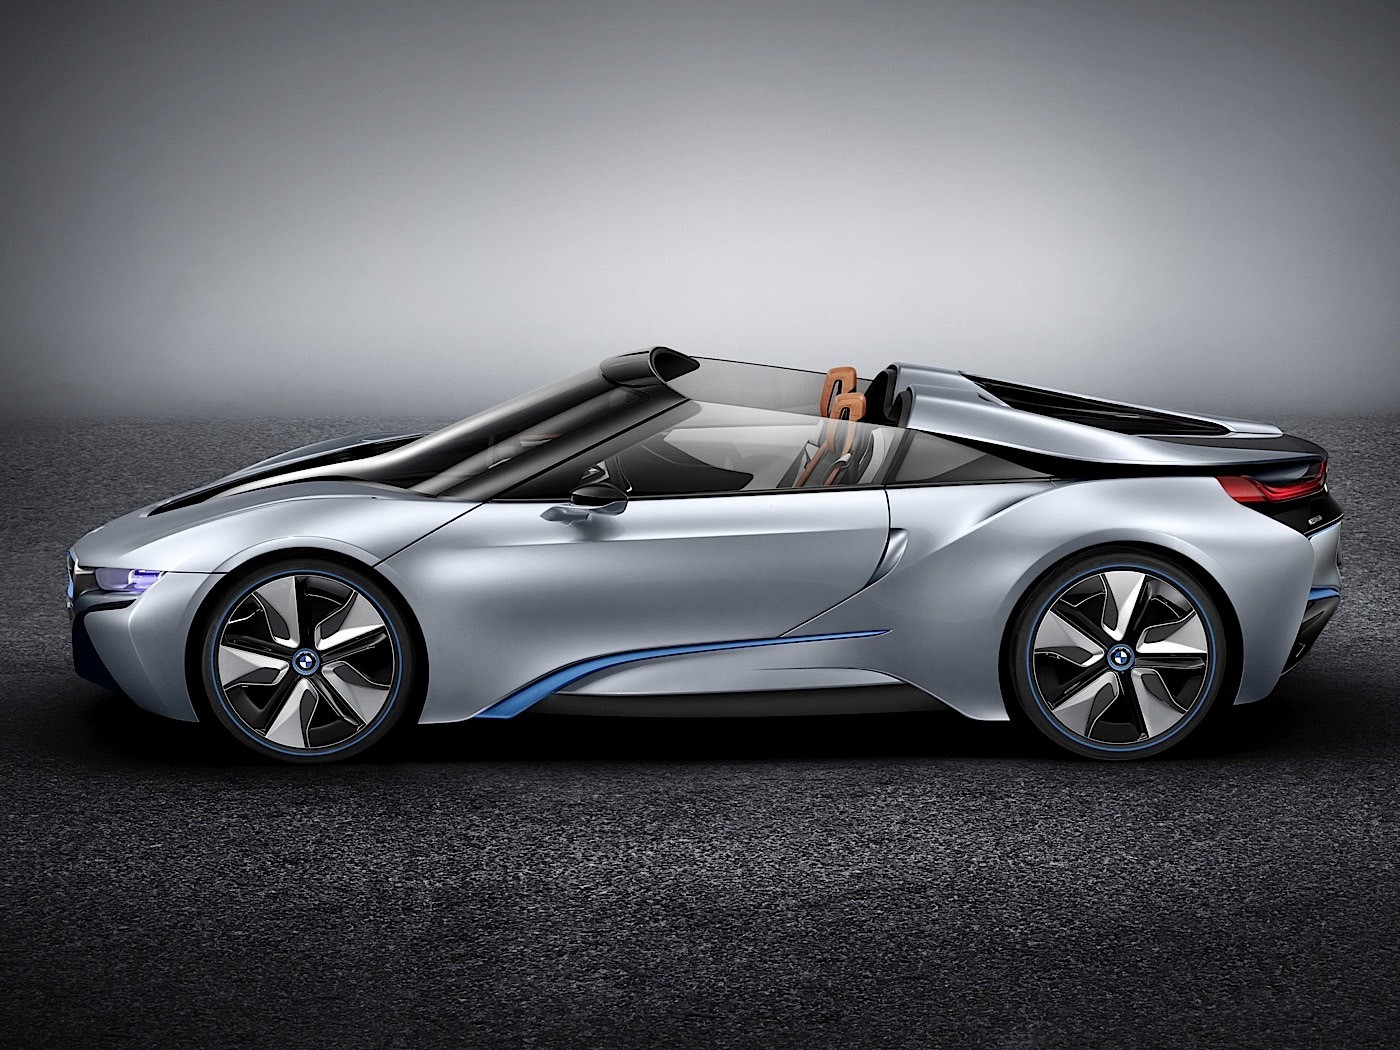 Bmw I8 Roadster Is Officially On The Way Along With A New I3 Version Autoevolution